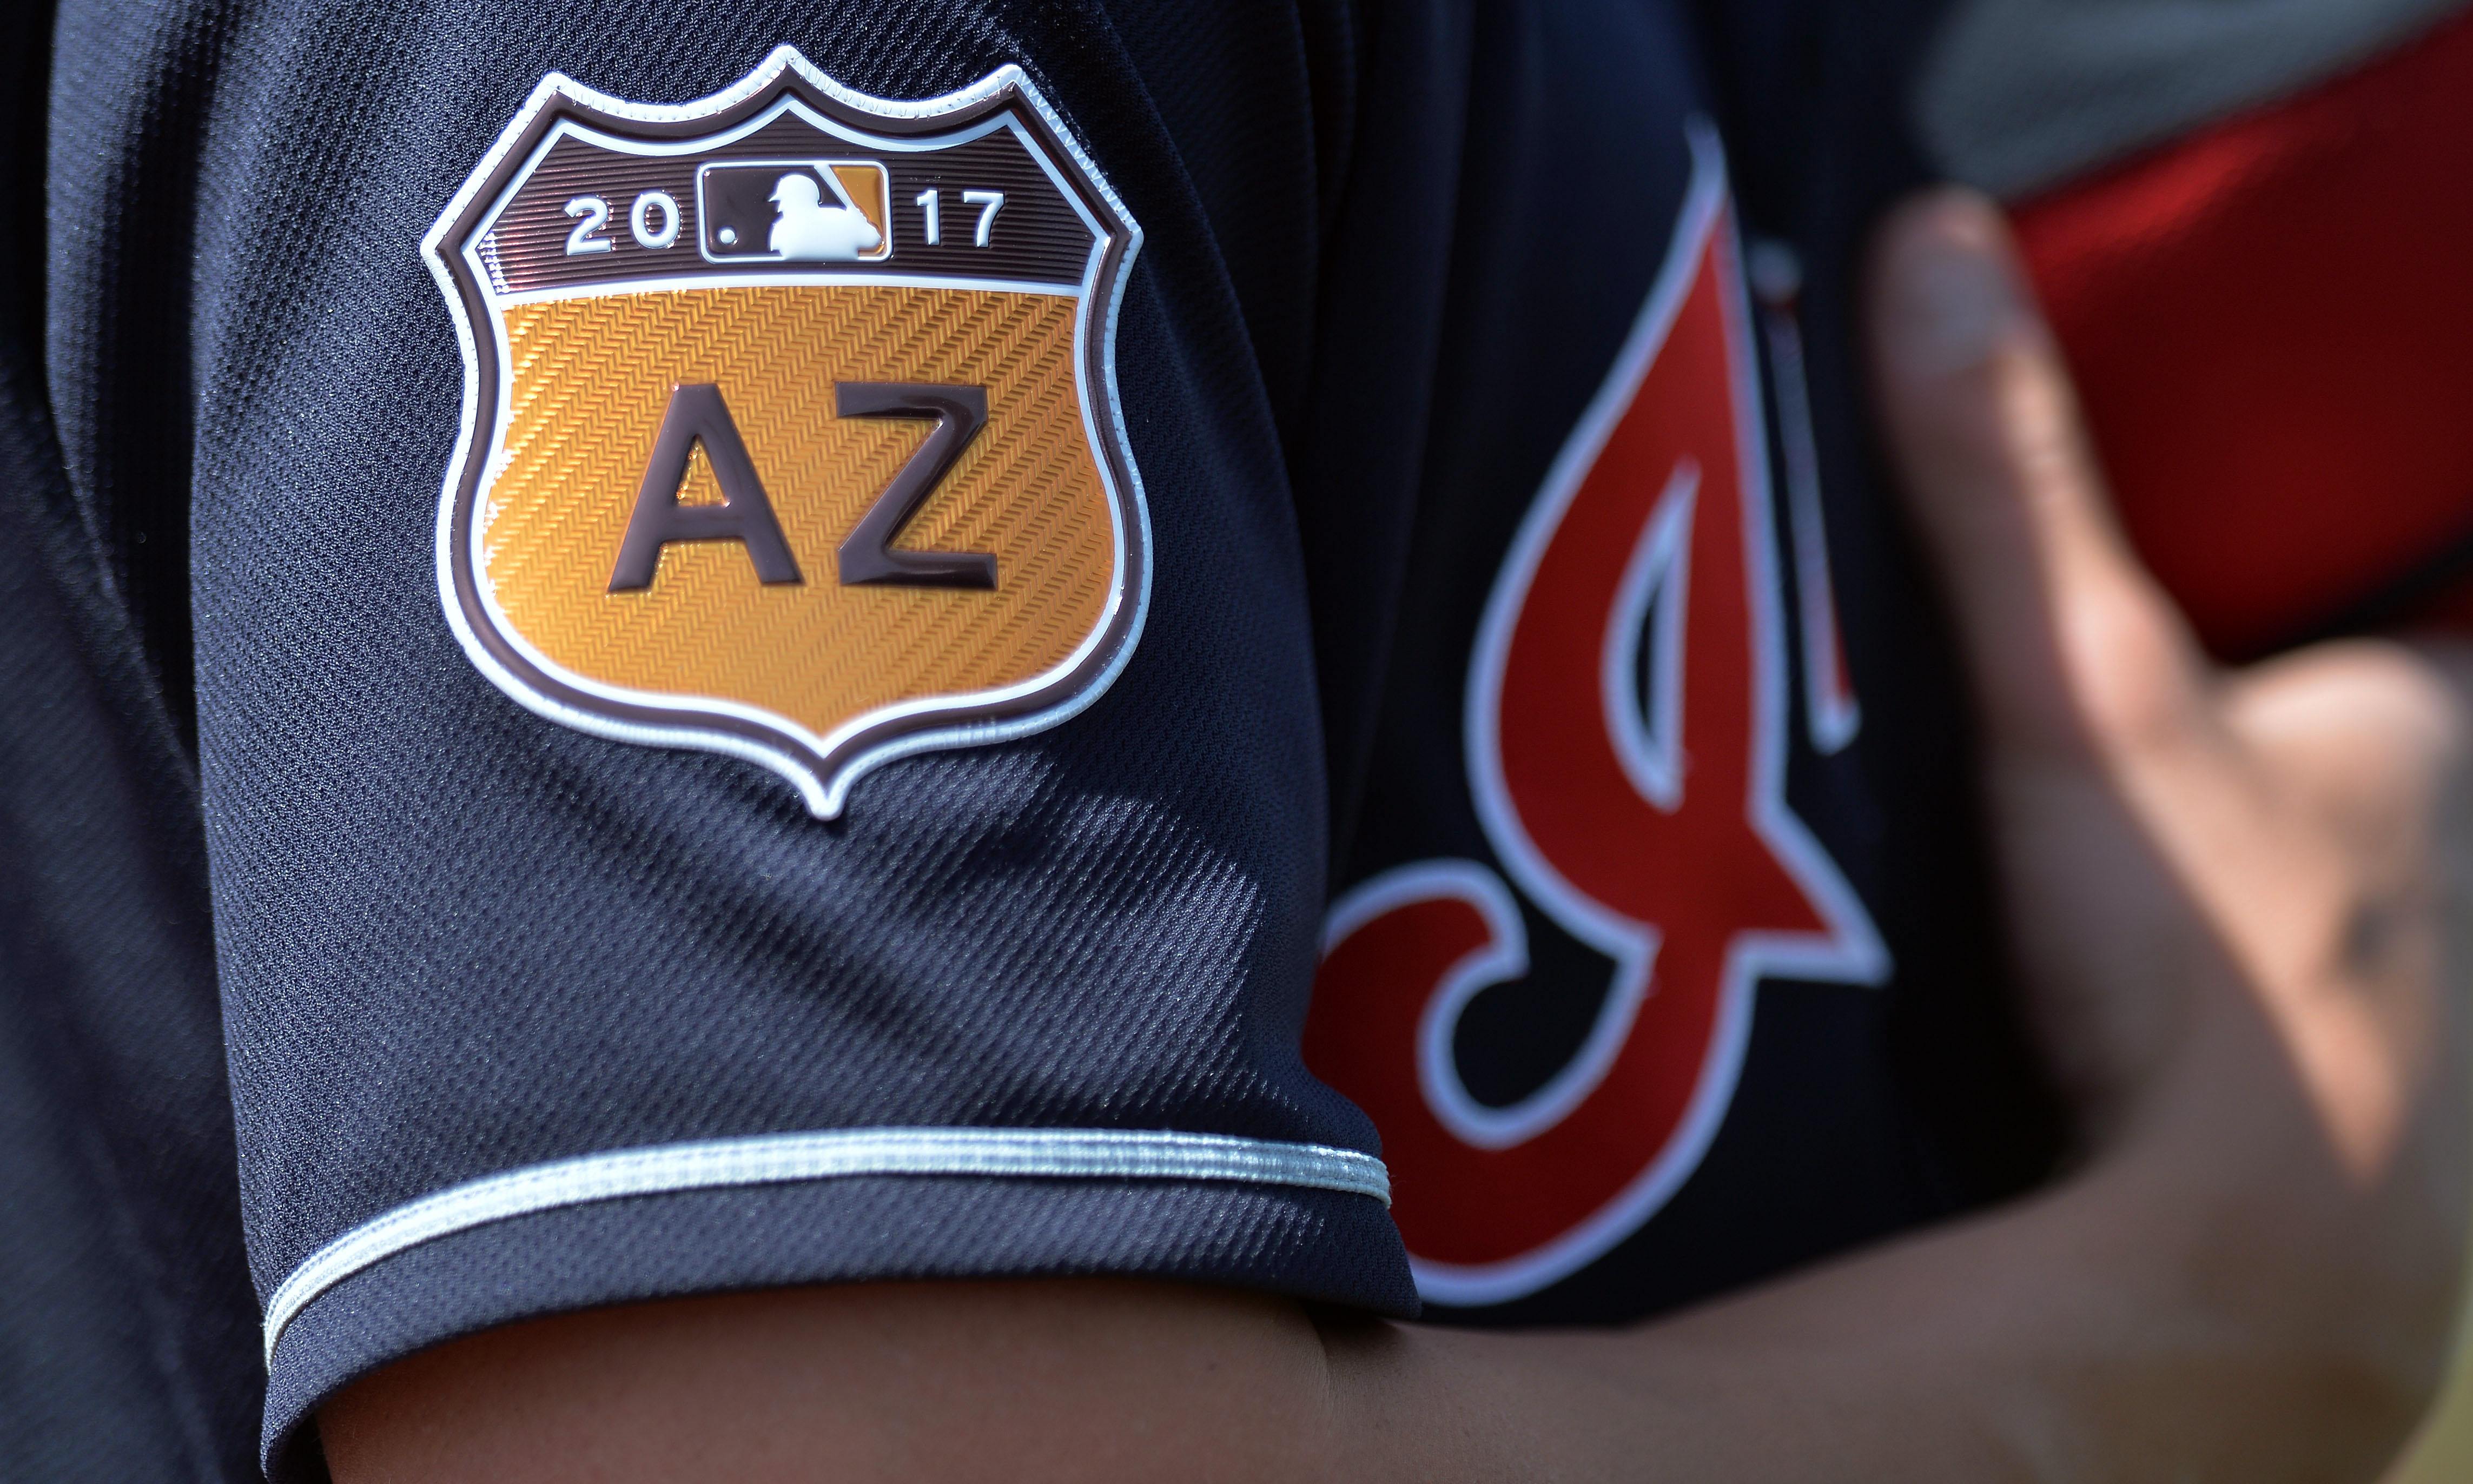 9960951-mlb-spring-training-los-angeles-dodgers-at-cleveland-indians